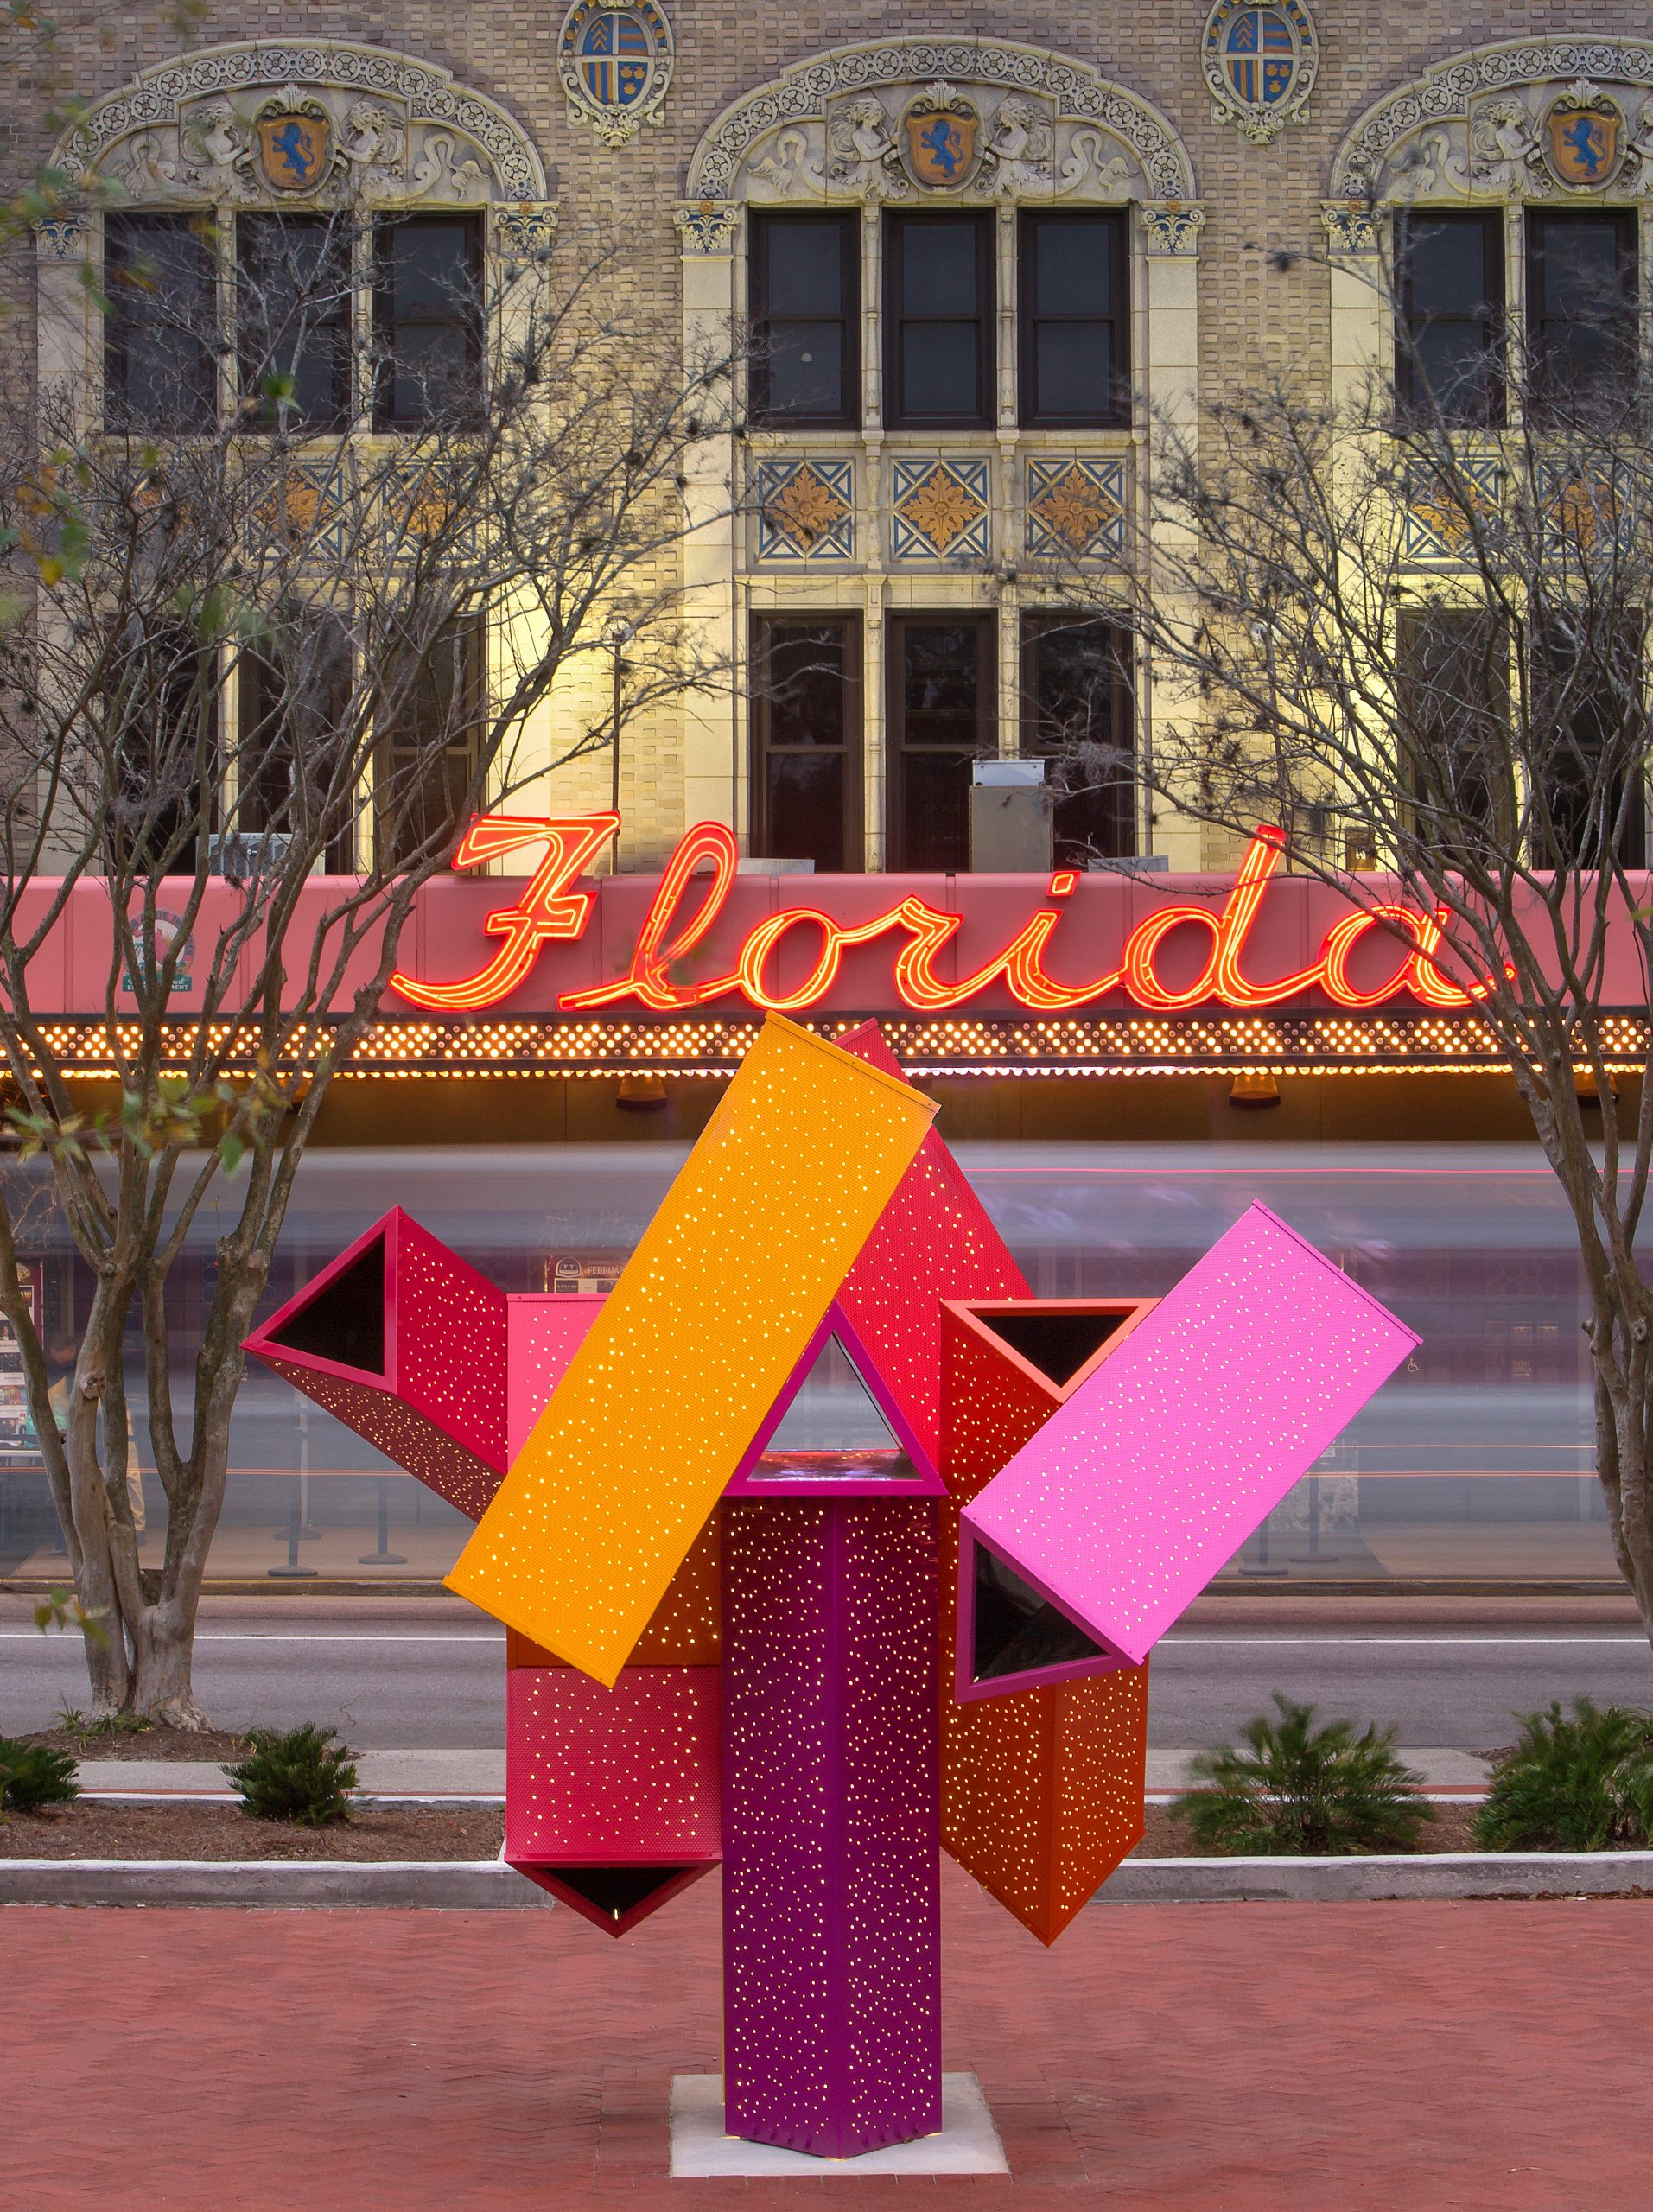 JAXOSCOPE: a public art sculpture by Shasti O'Leary Soudant, infant of the Florida Theater